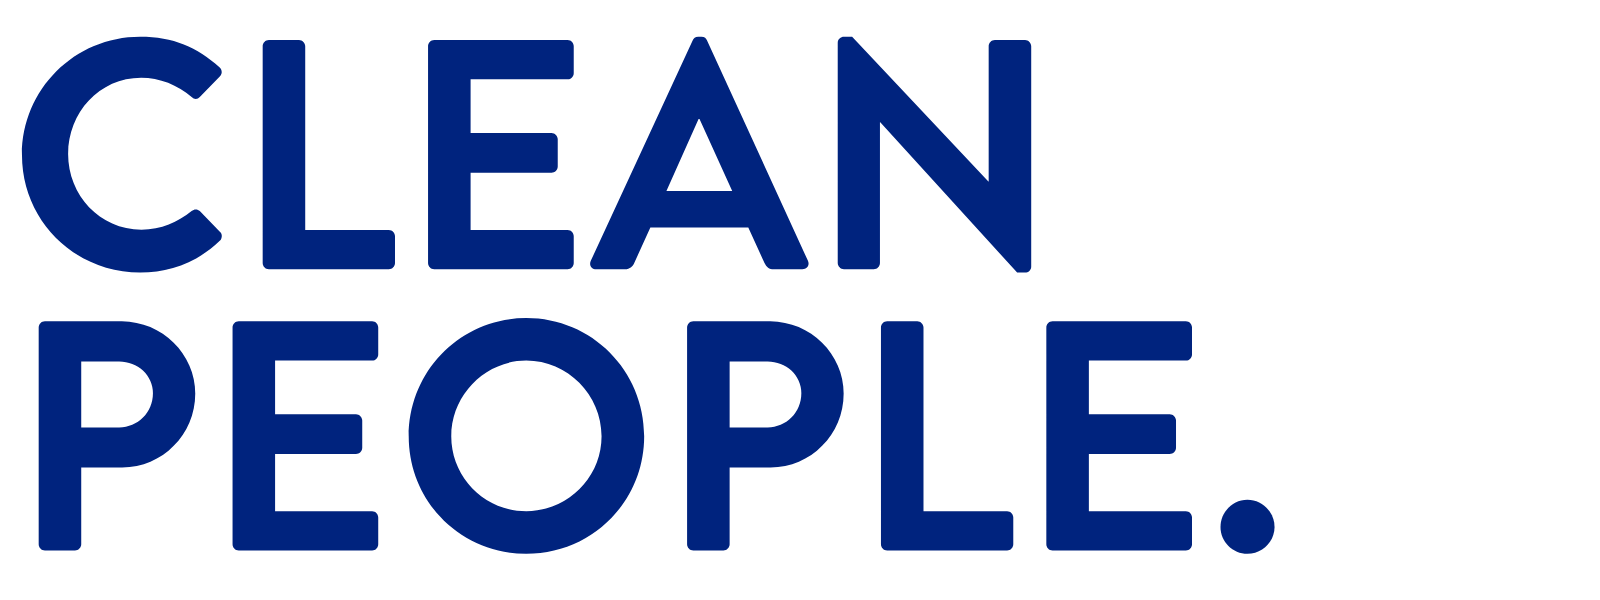 The Clean People